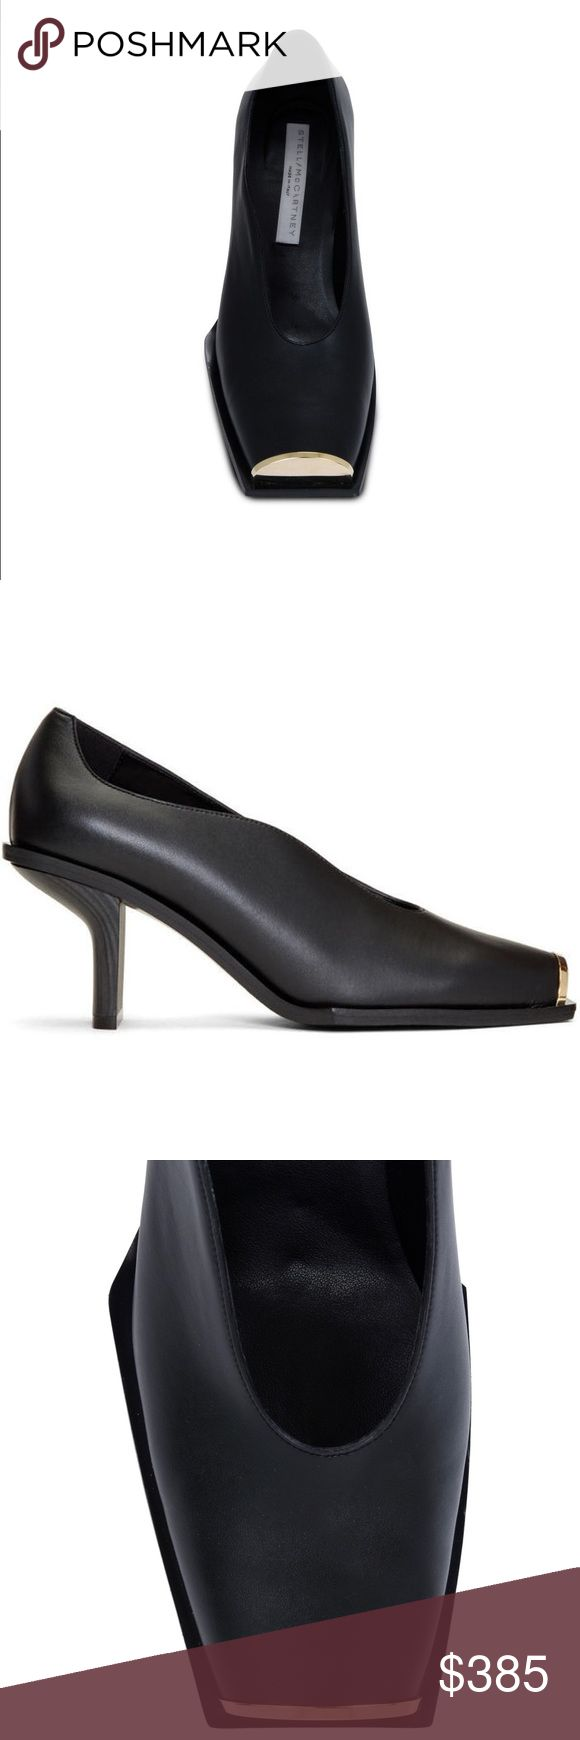 Stella McCartney Black Alter Nappa Pumps Brand new, never worn. Moving sale. No shoe box.  Size 37.5 I wear 7.5-8 and this fit me perfectly.   I'm selling the black one but attached some pics people model in different color for reference.   • 7 cm/2.8 in heel • Made in Italy Stella McCartney Shoes Heels